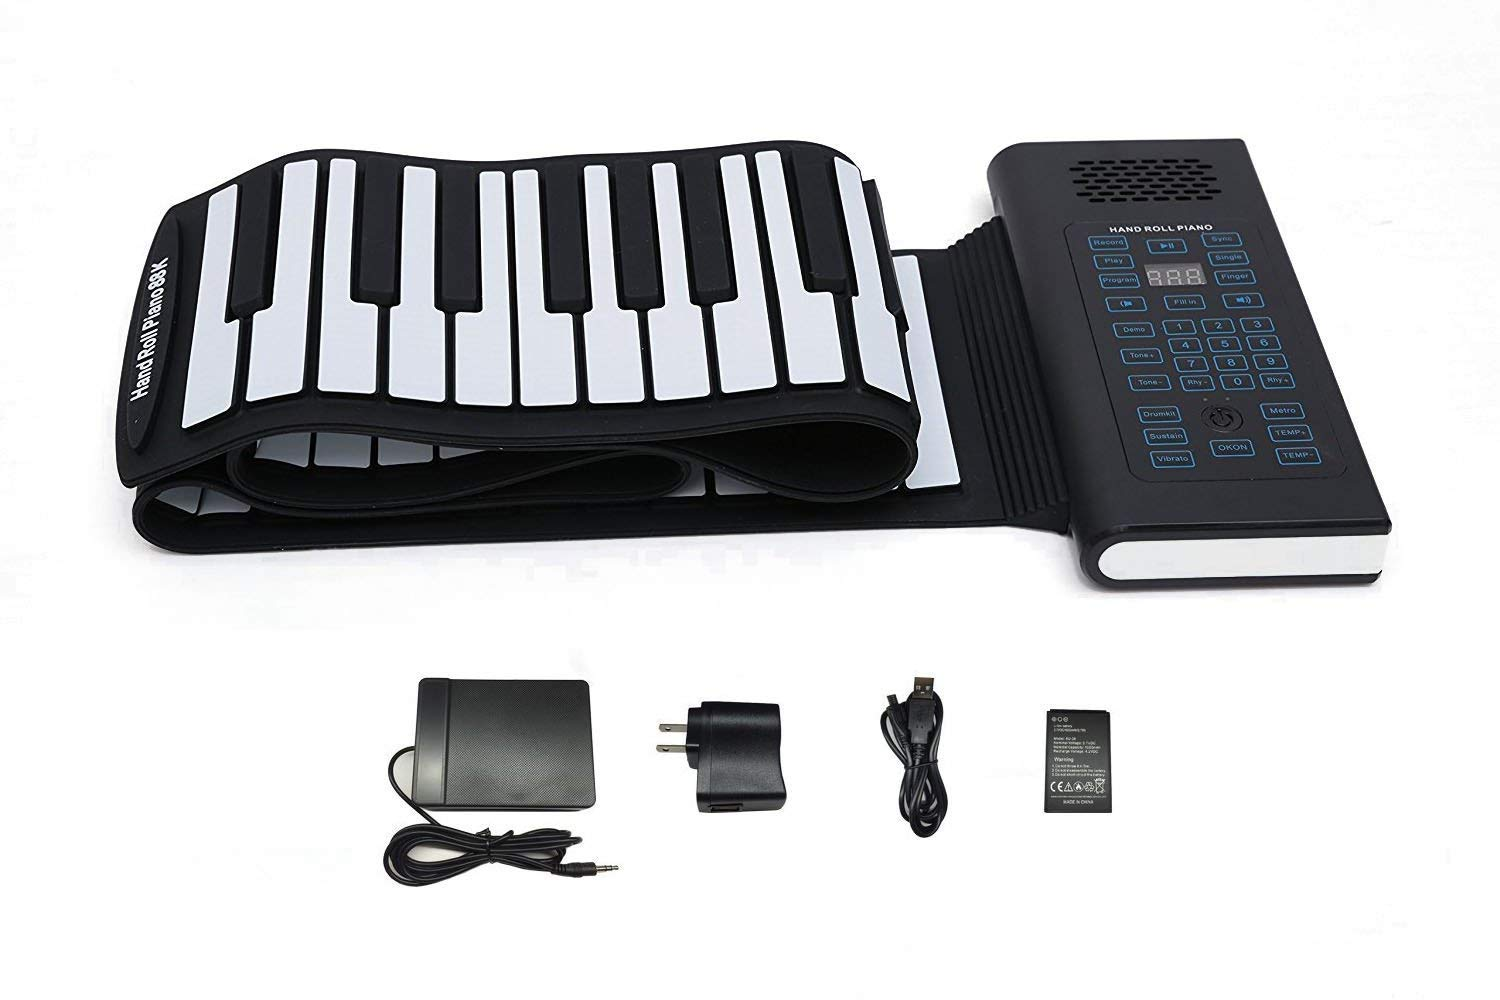 KMUSIC Roll Up Piano, Premium Grade Silicone, THICKENED KEYS, and Upgraded Built-in Amplifying Speakers - Educational Piano (A61-61 Keys, Black) by Kiker Music